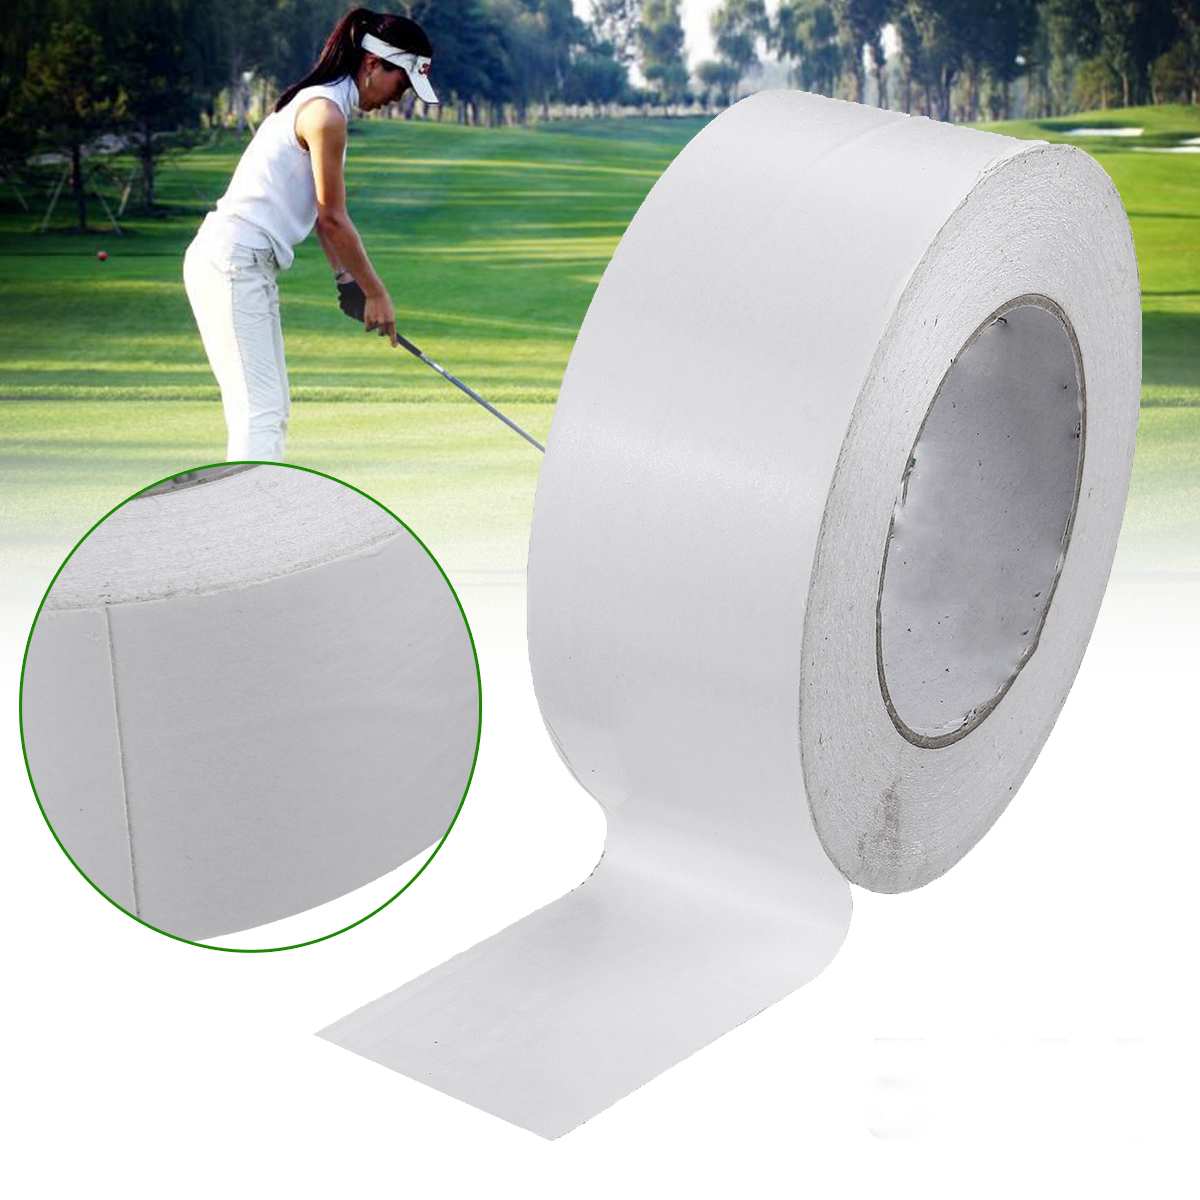 1 Roll 50 Meters Double Sided Grip Tape Golf Clubs Tools Accessories